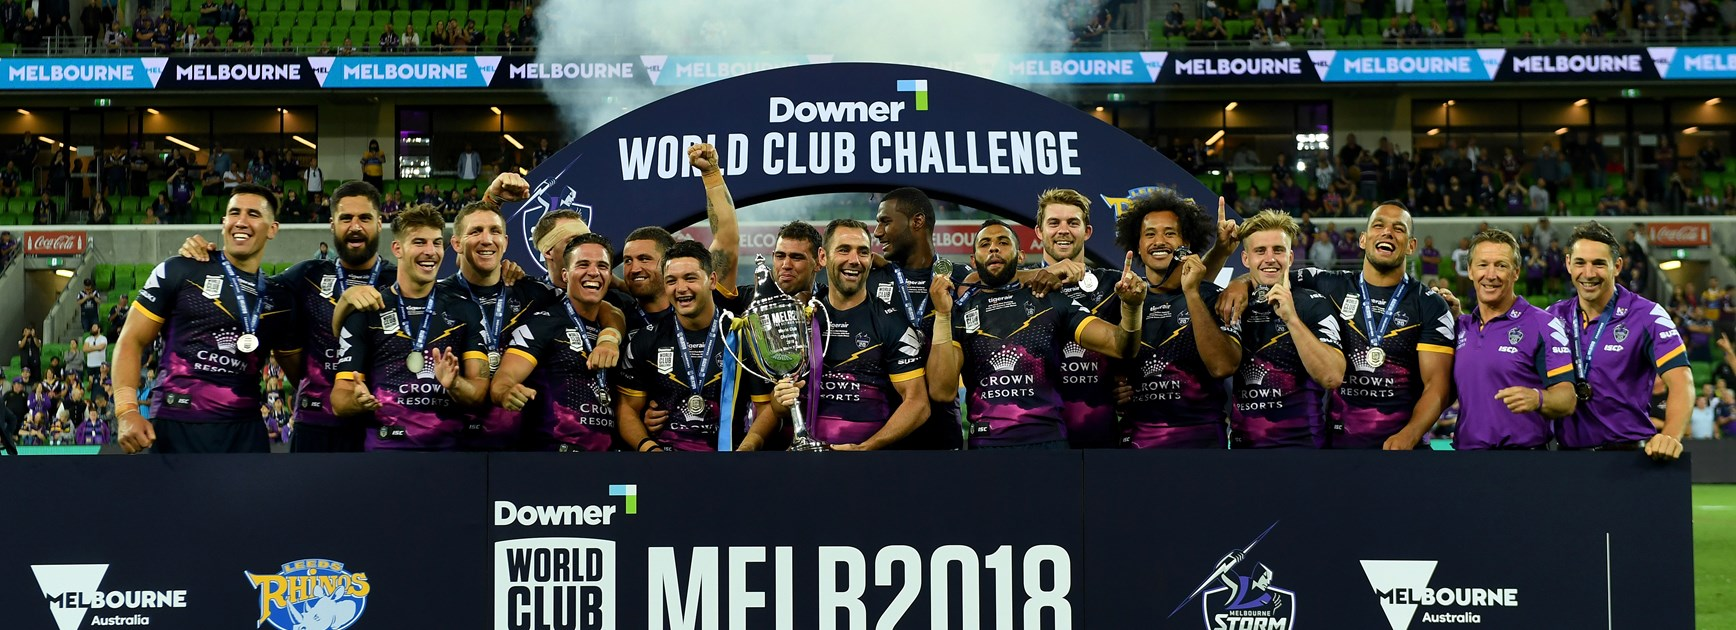 The Melbourne Storm celebrate their World Club Challenge win.